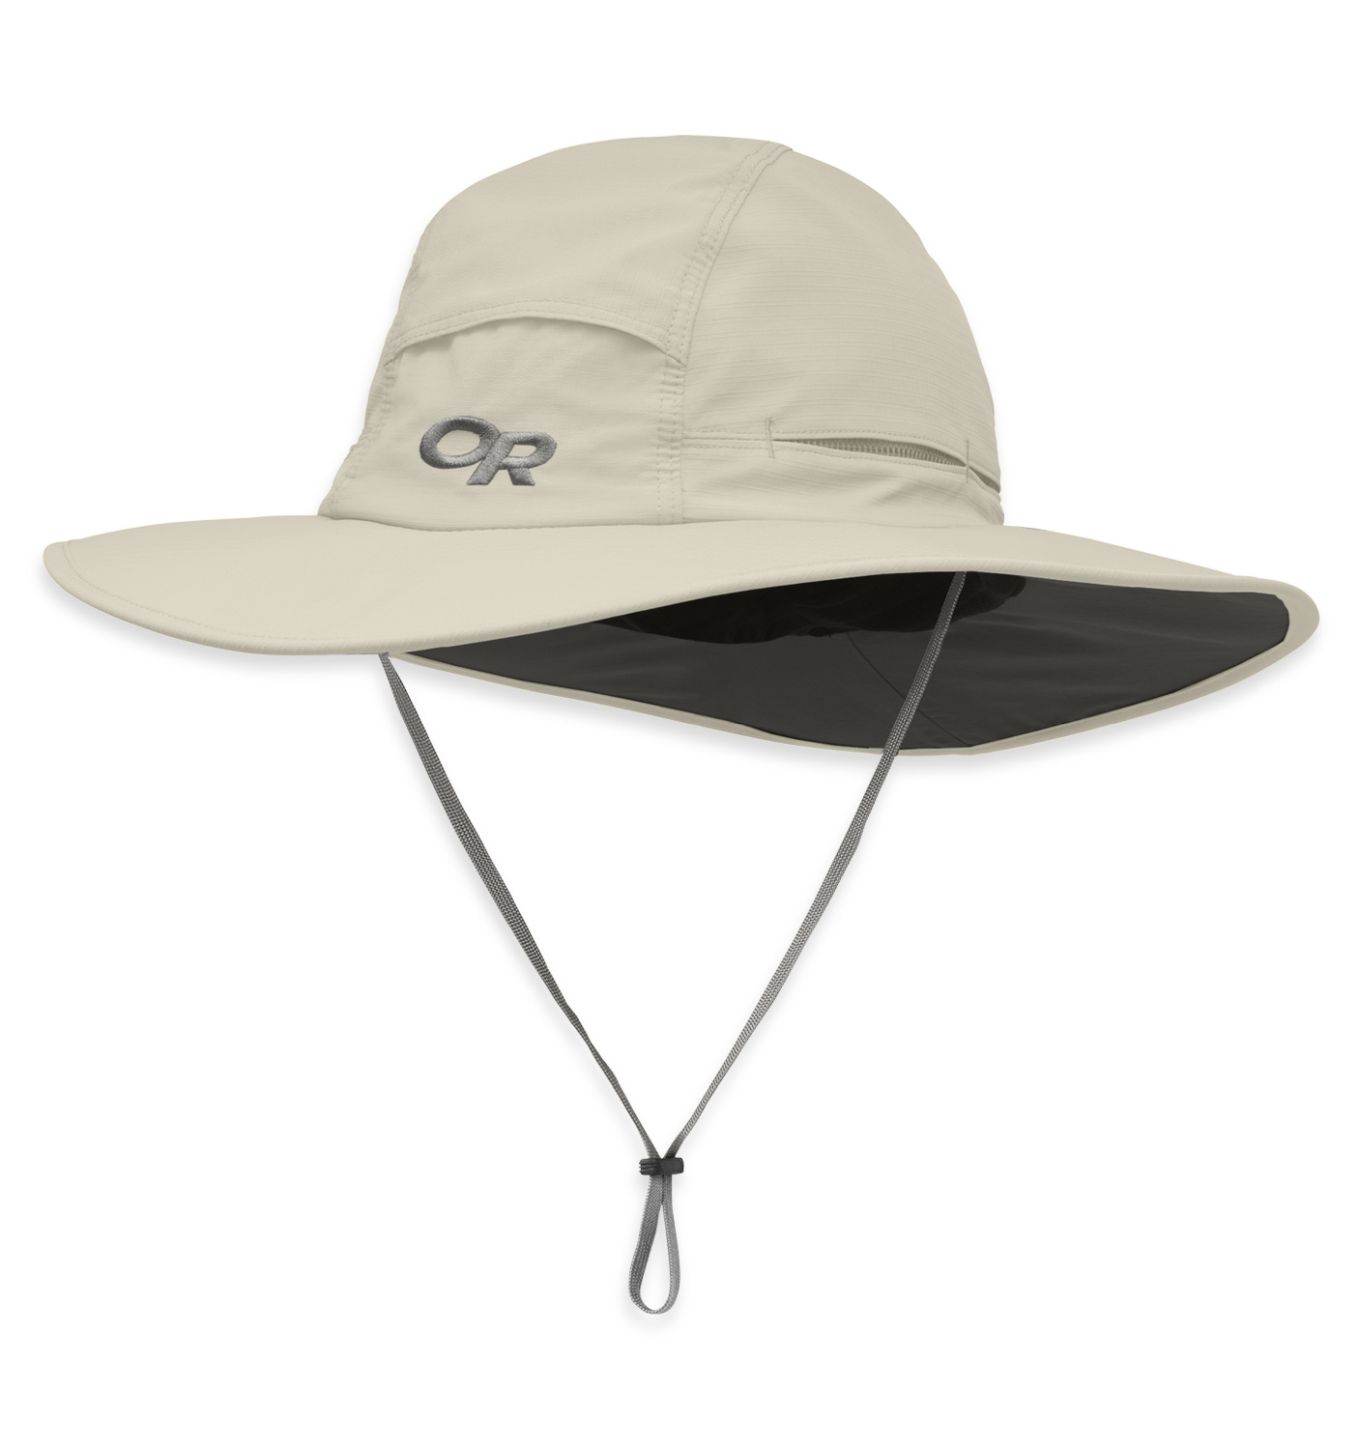 Outdoor Research Sombriolet Sun Hat sand-30